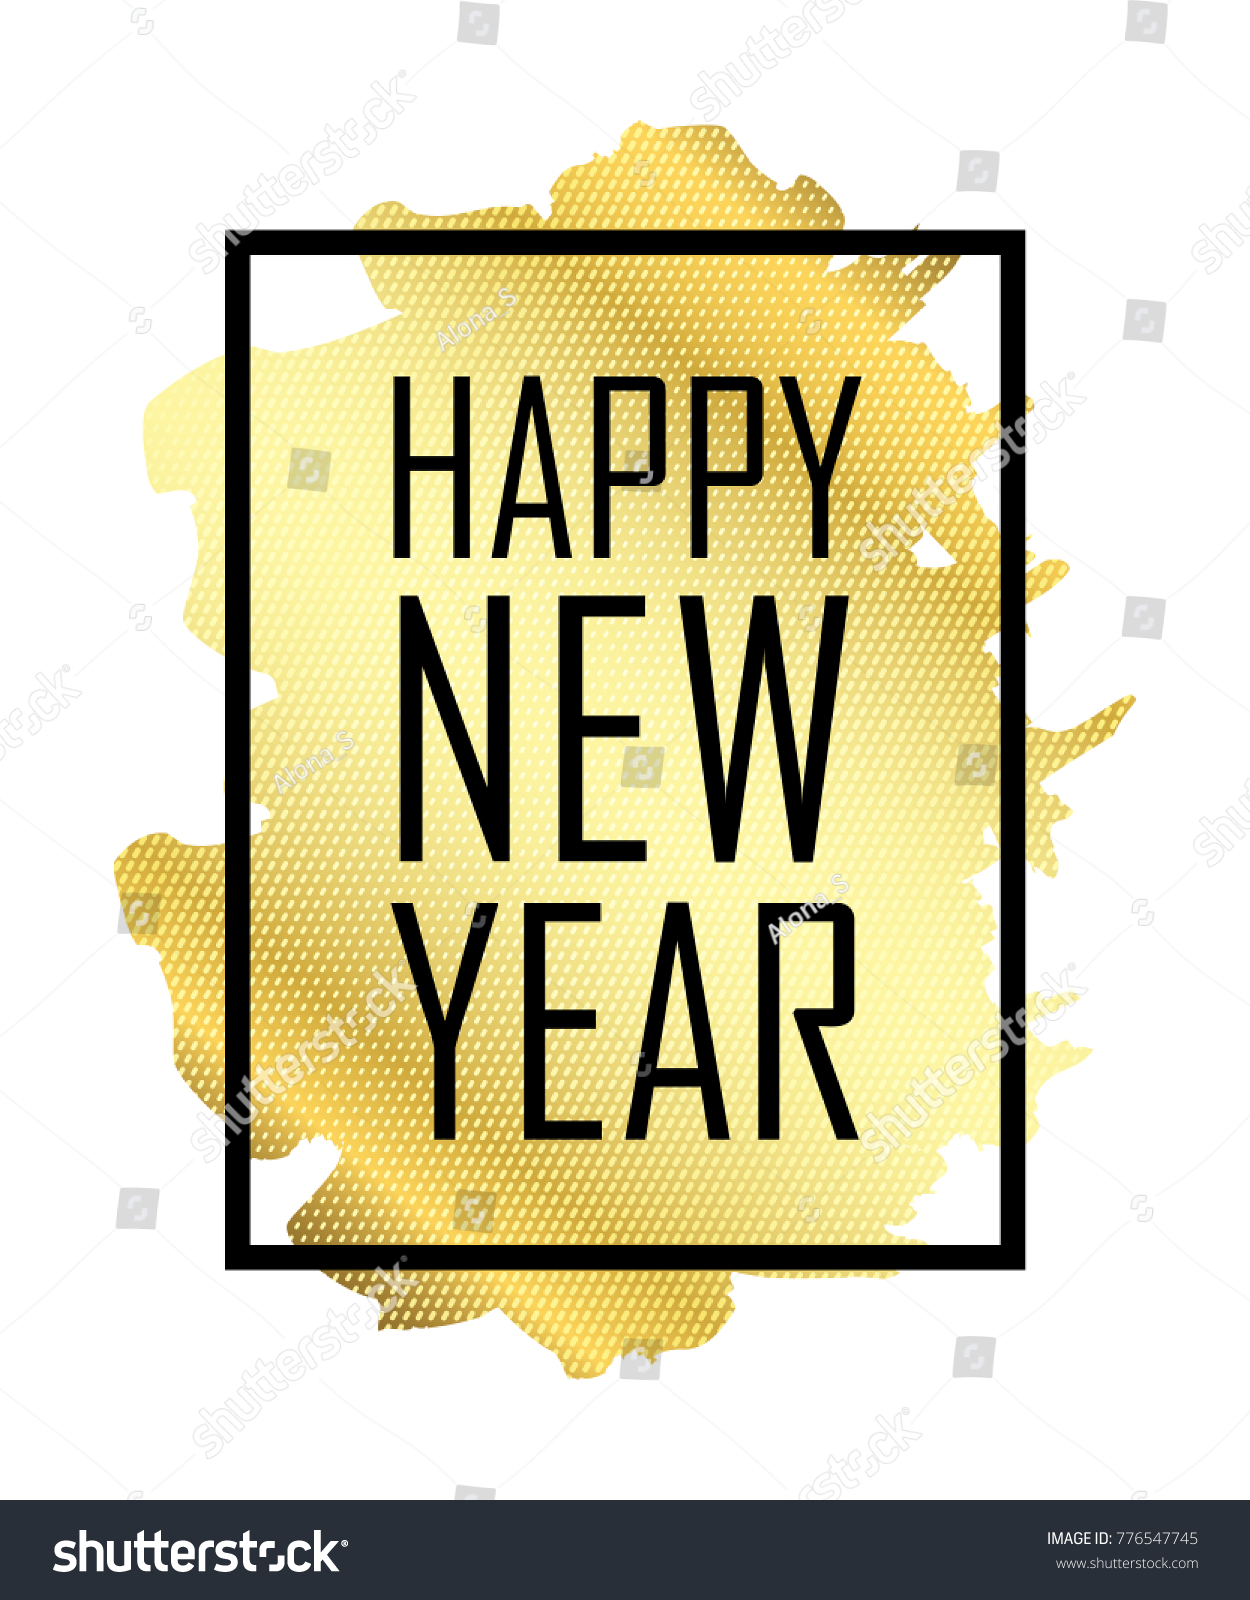 happy new year text gold happy new year or christmas isolated background black border